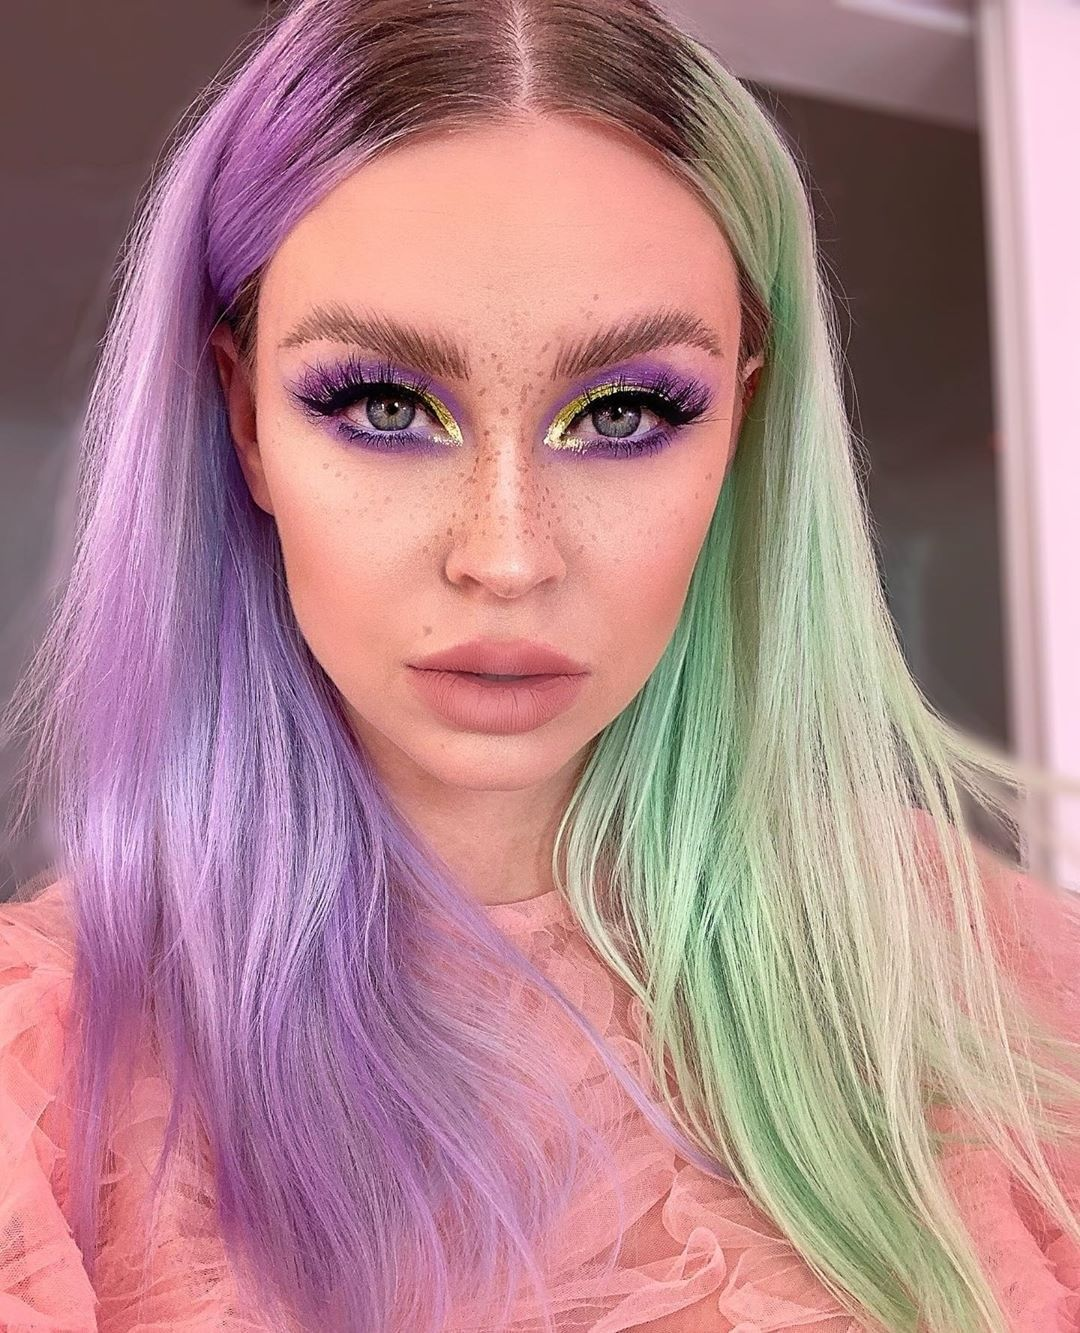 12 8 Mil Curtidas 47 Comentarios Vegan Cruelty Free Color Arcticfoxhaircolor No Instagram Can You Eve In 2020 Dyed Hair Aesthetic Hair Hair Inspiration Color